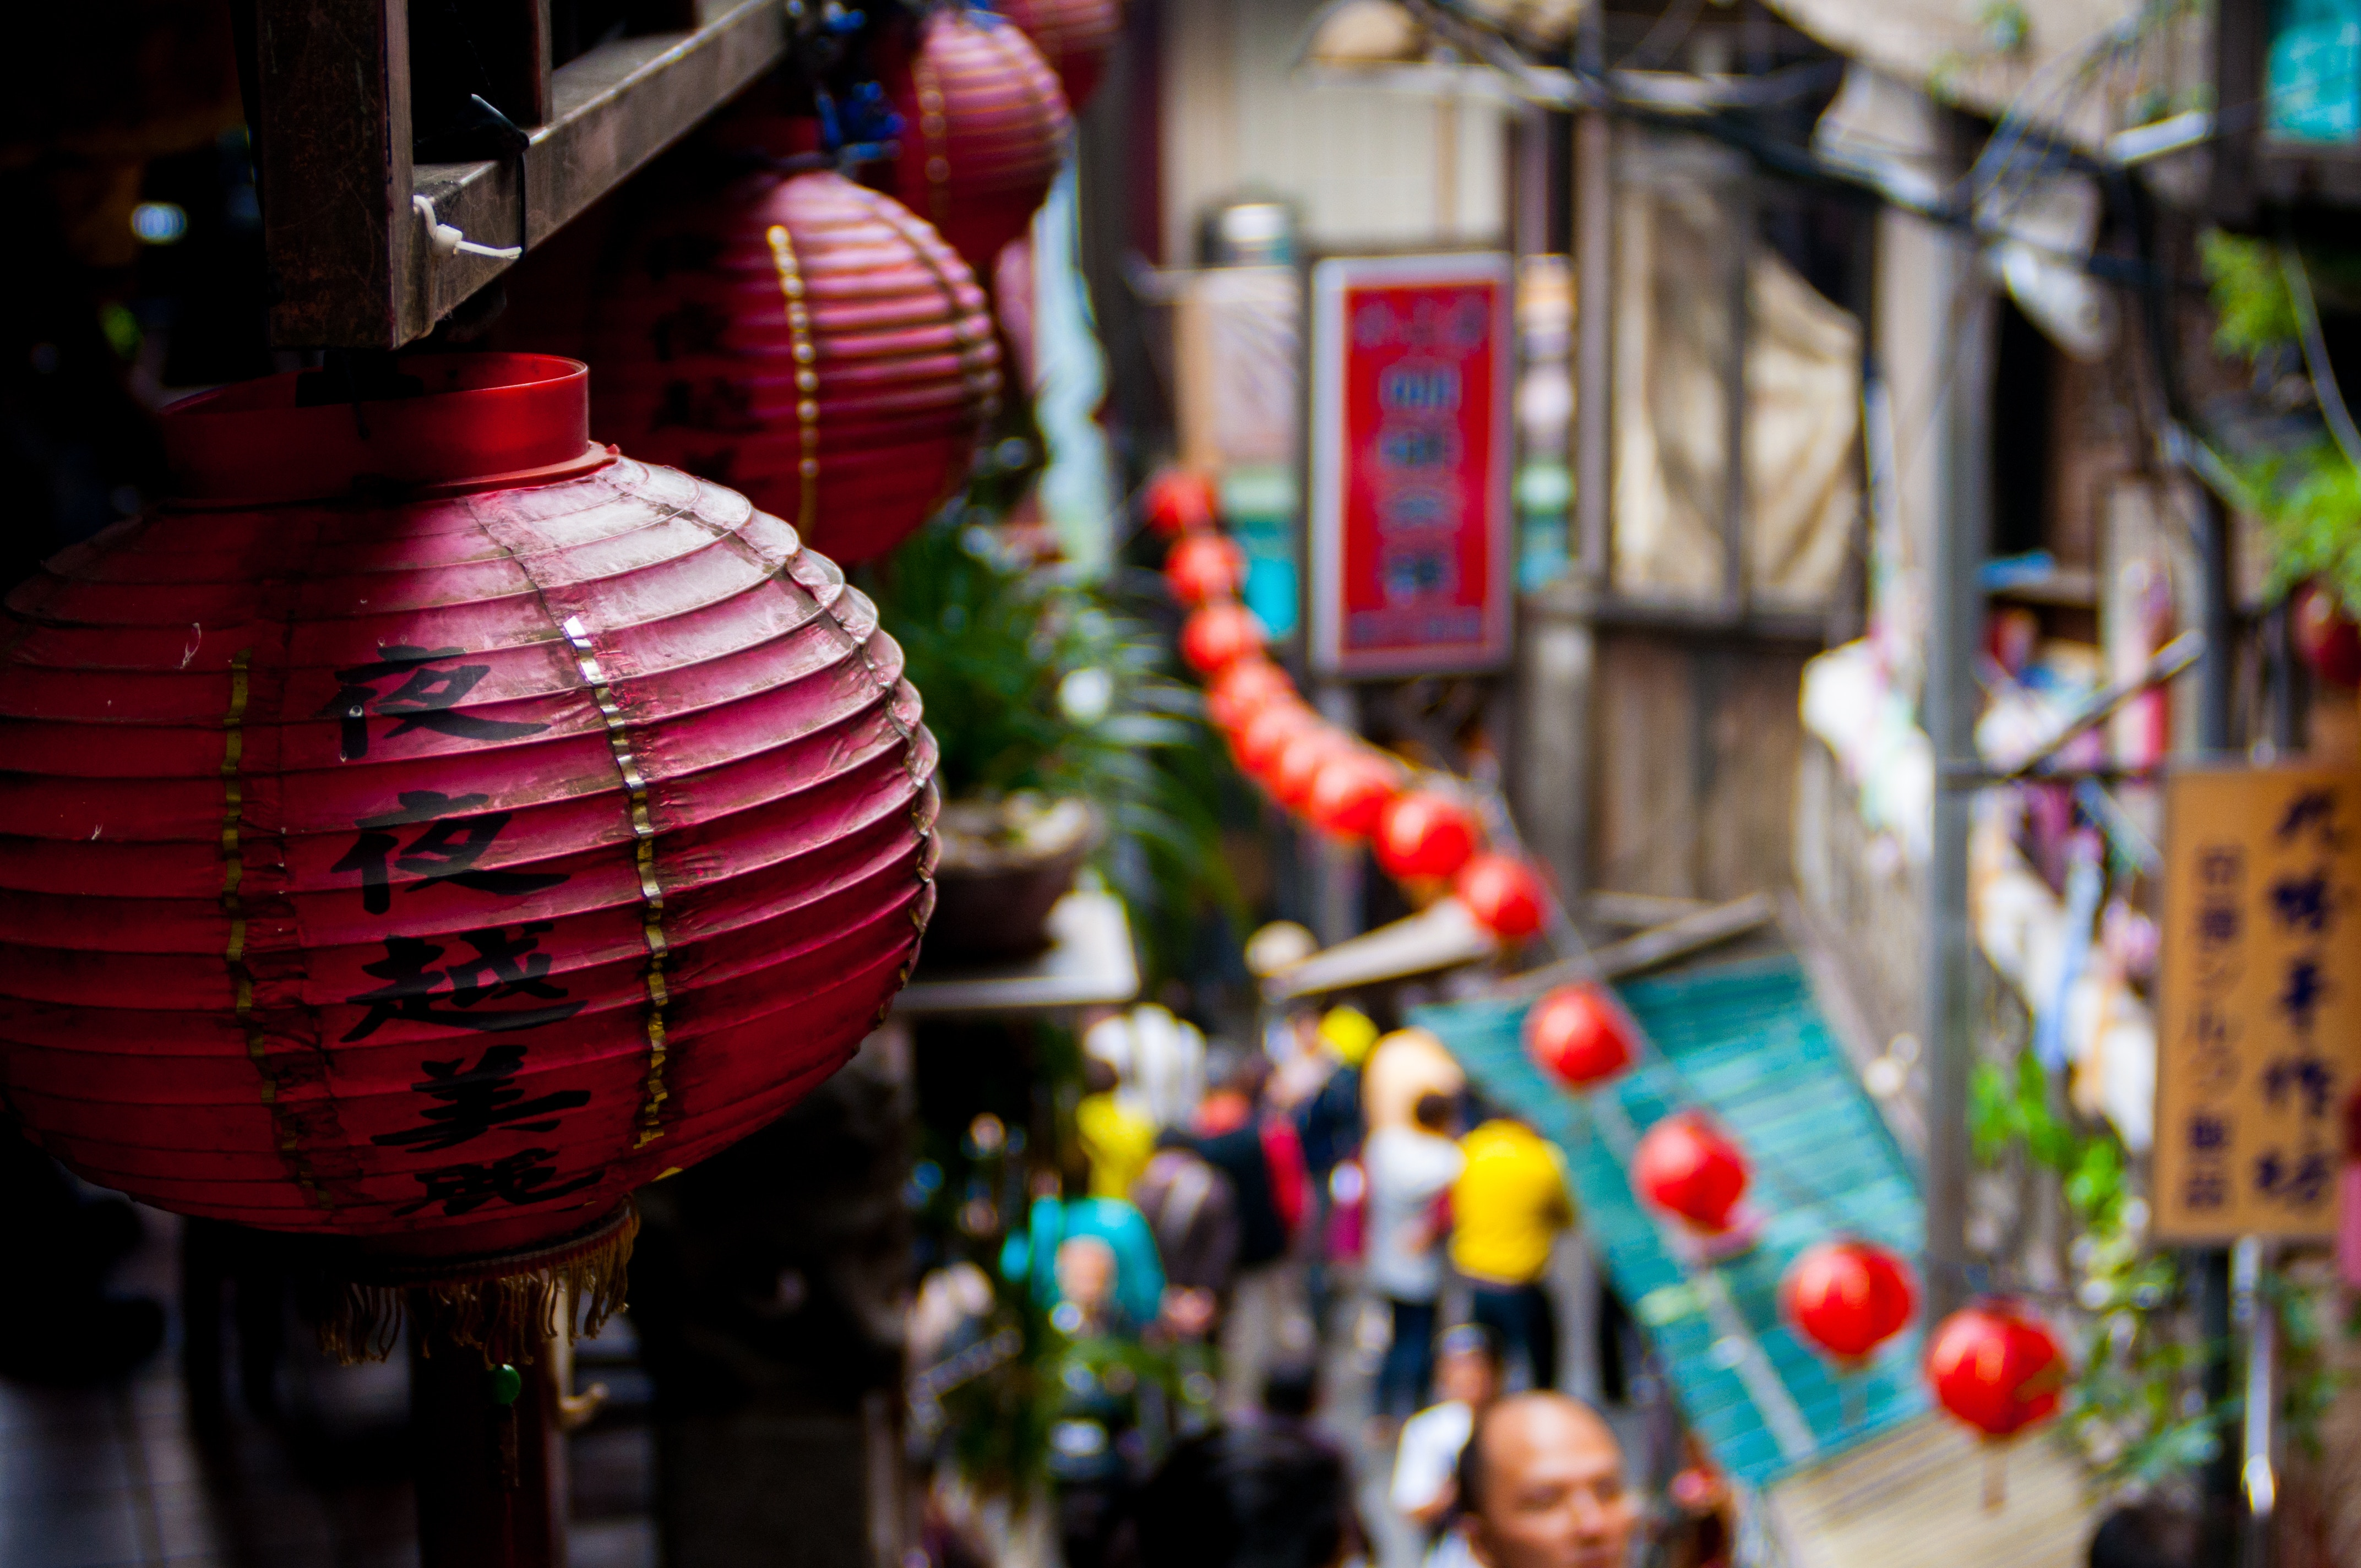 Chinese traditional street